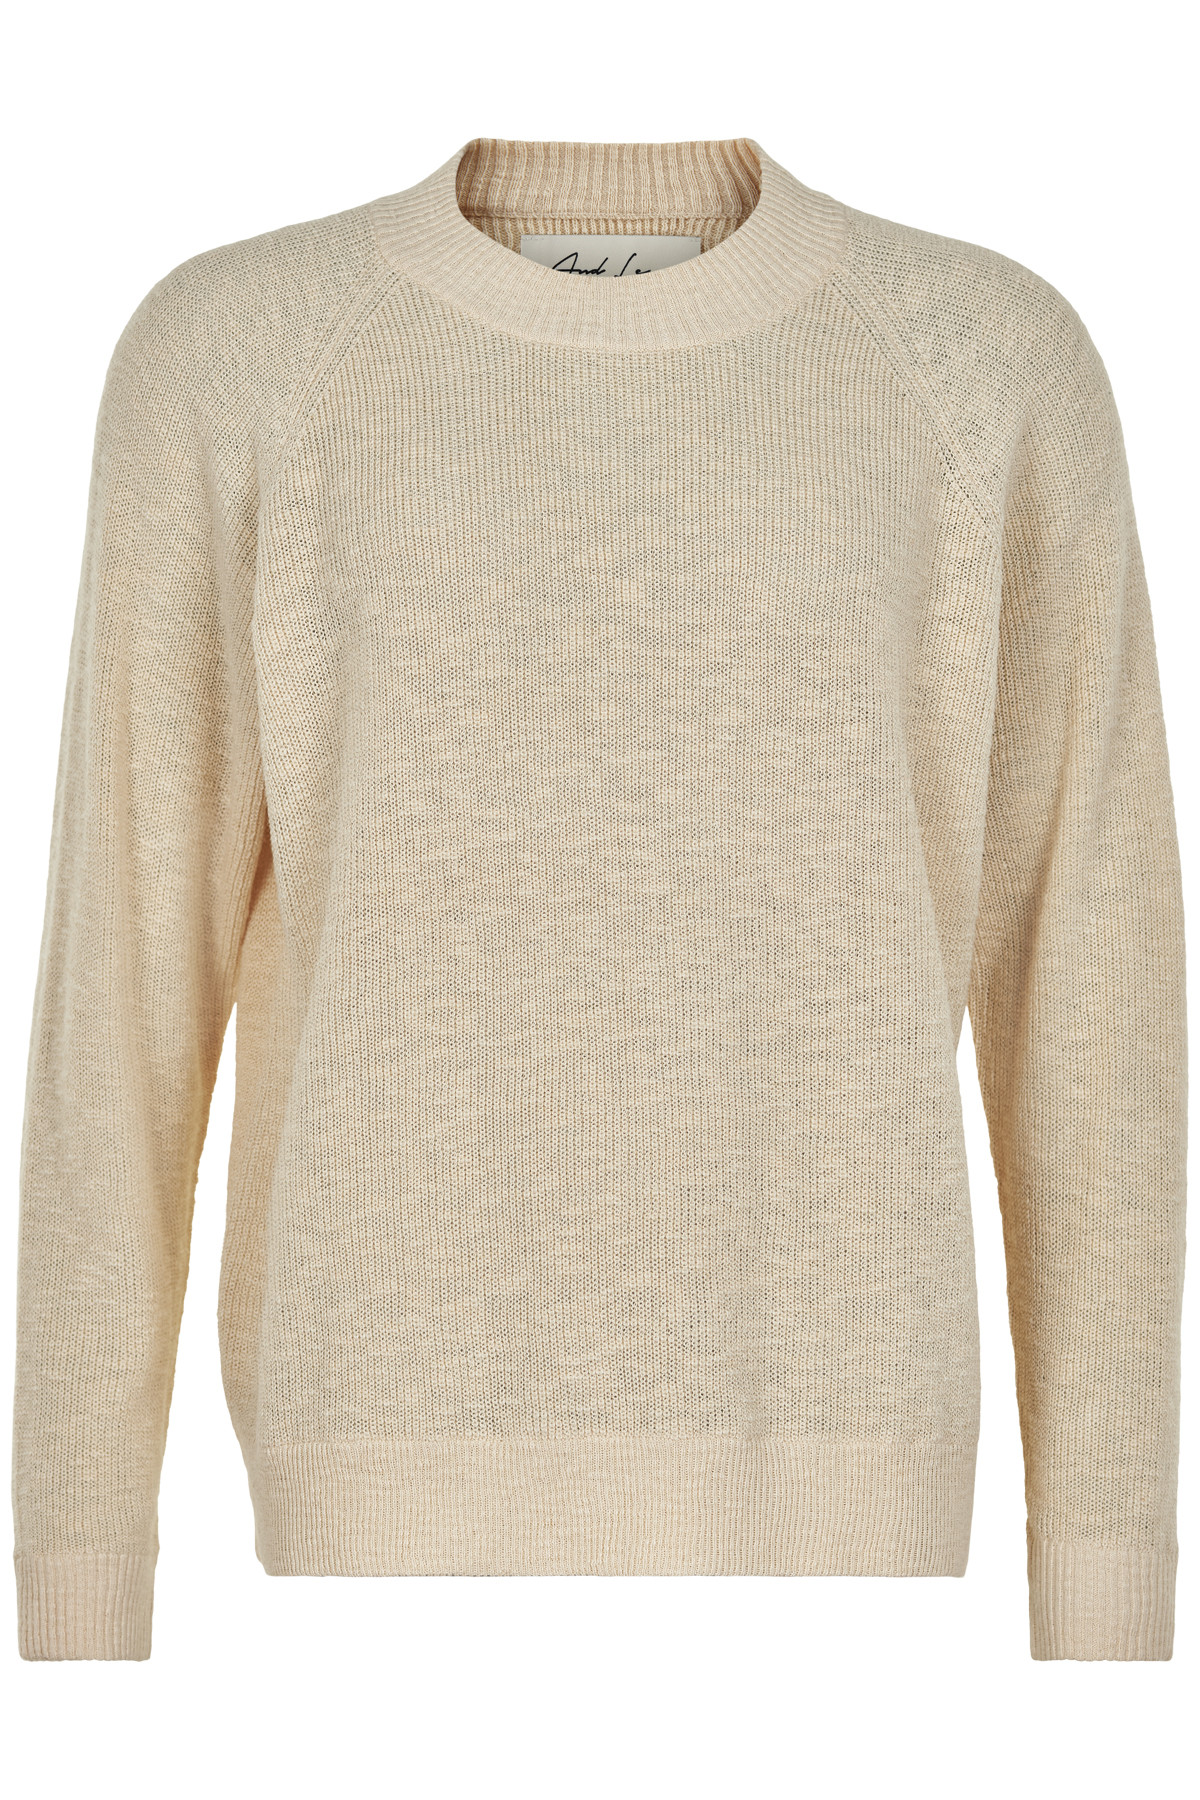 Image of   AND LESS ALBAMBINA PULLOVER 5220201 9504 (Birch, XS)